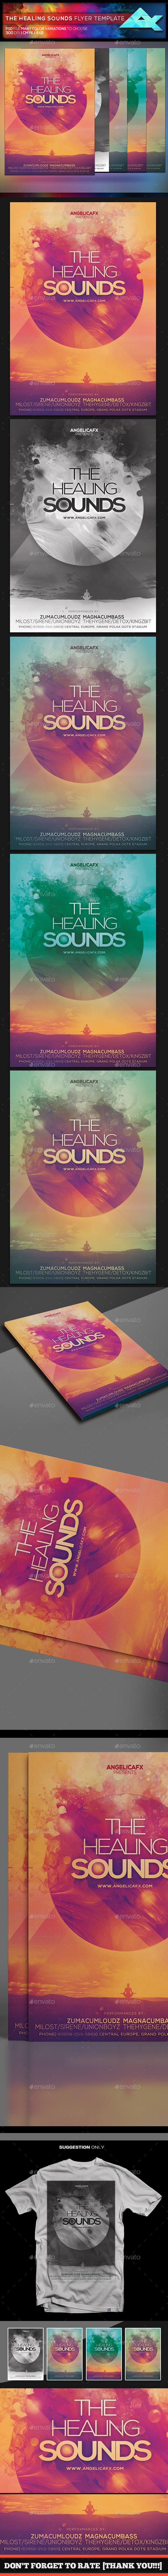 The Healing Sounds Flyer Template - Events Flyers